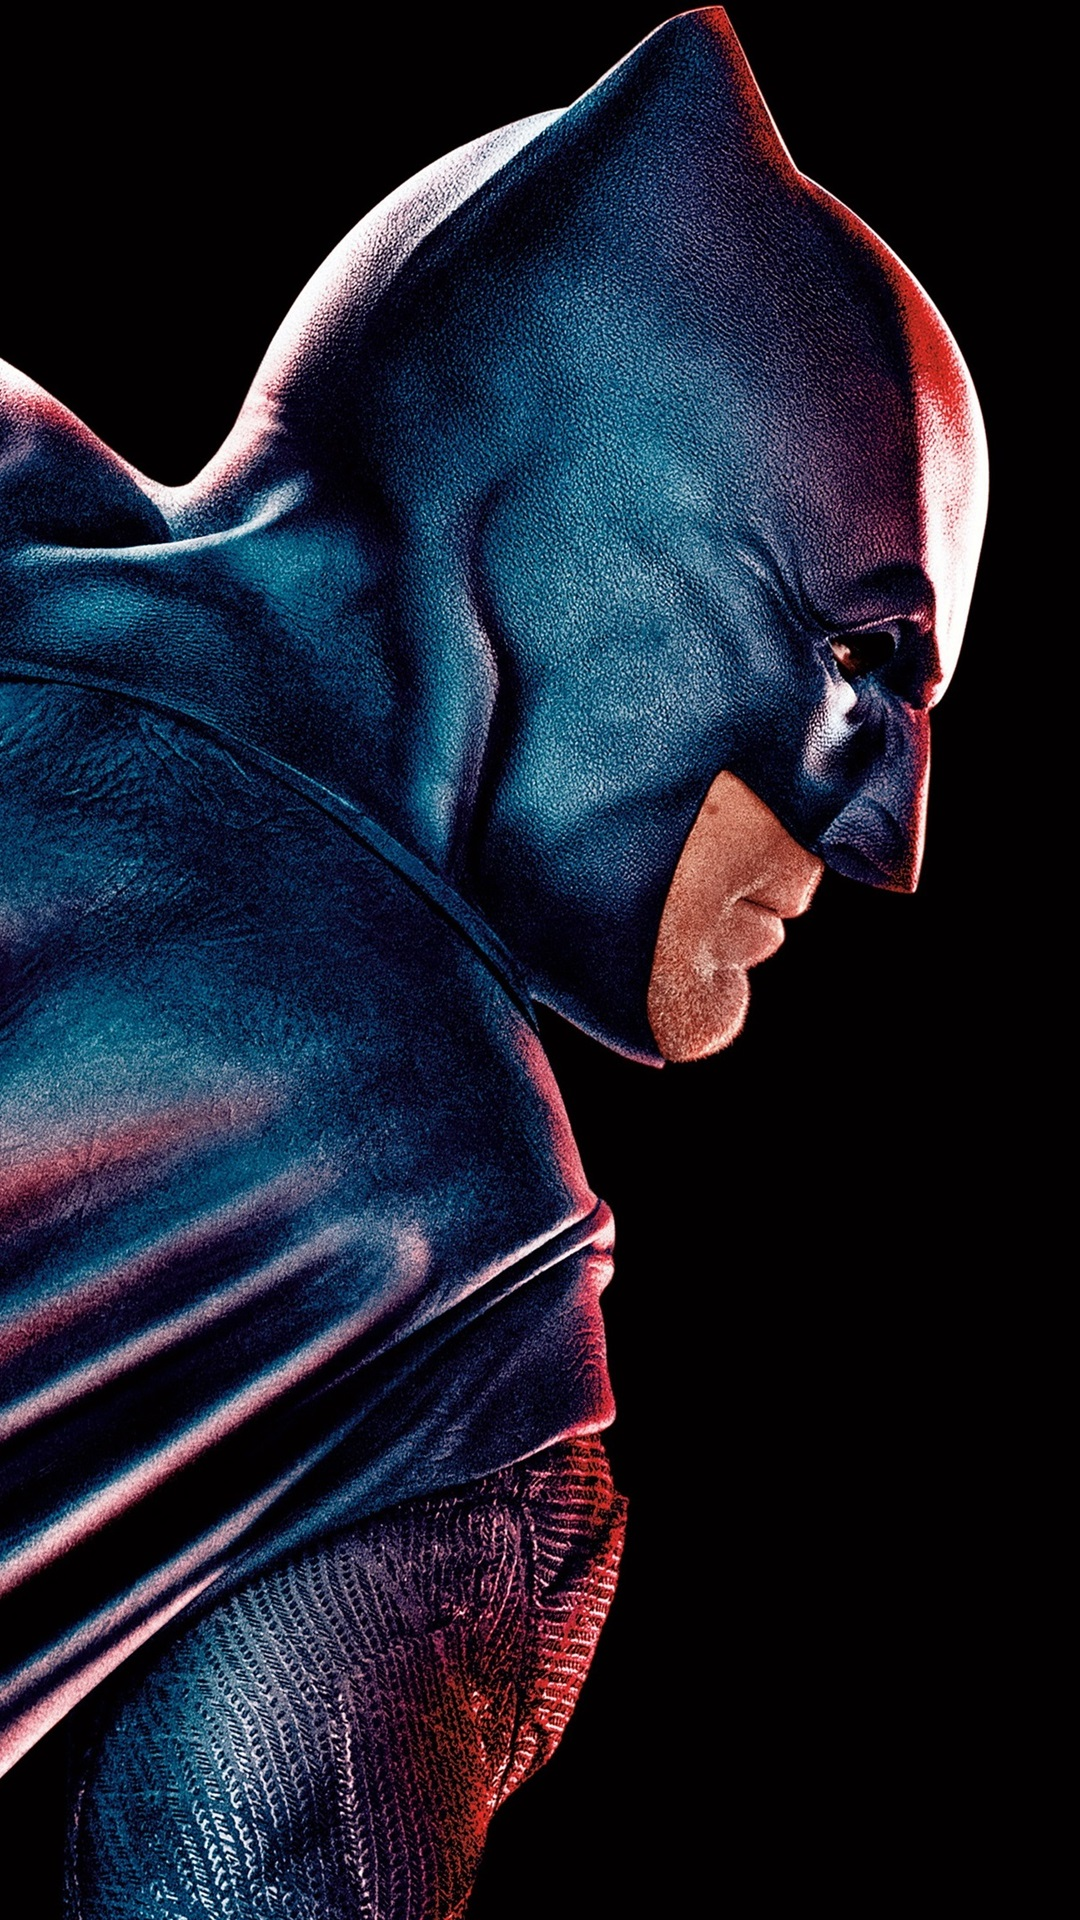 Batman Justice League 1080x1920 Iphone 8766s Plus Wallpaper